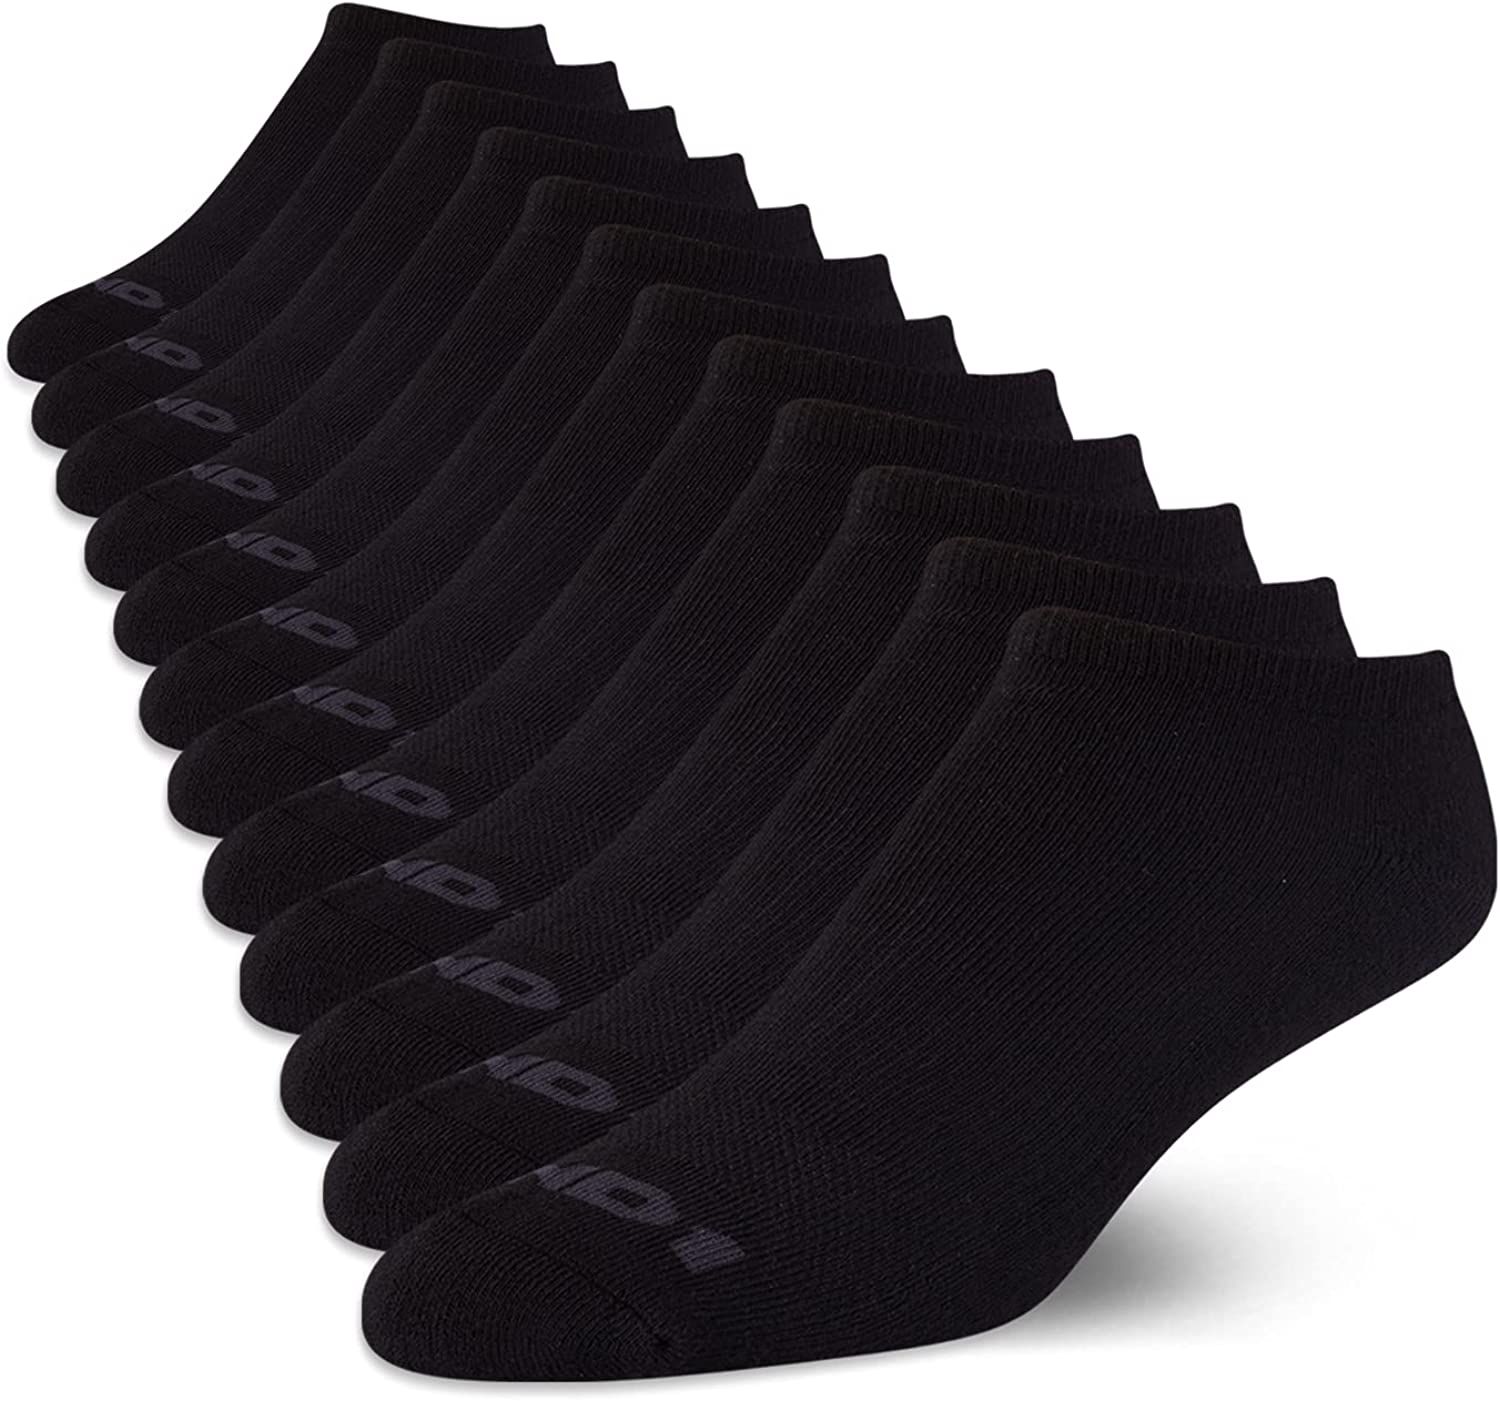 AND1 Men's Athletic Arch Compression Cushion Comfort Low Cut Socks (12 Pack)